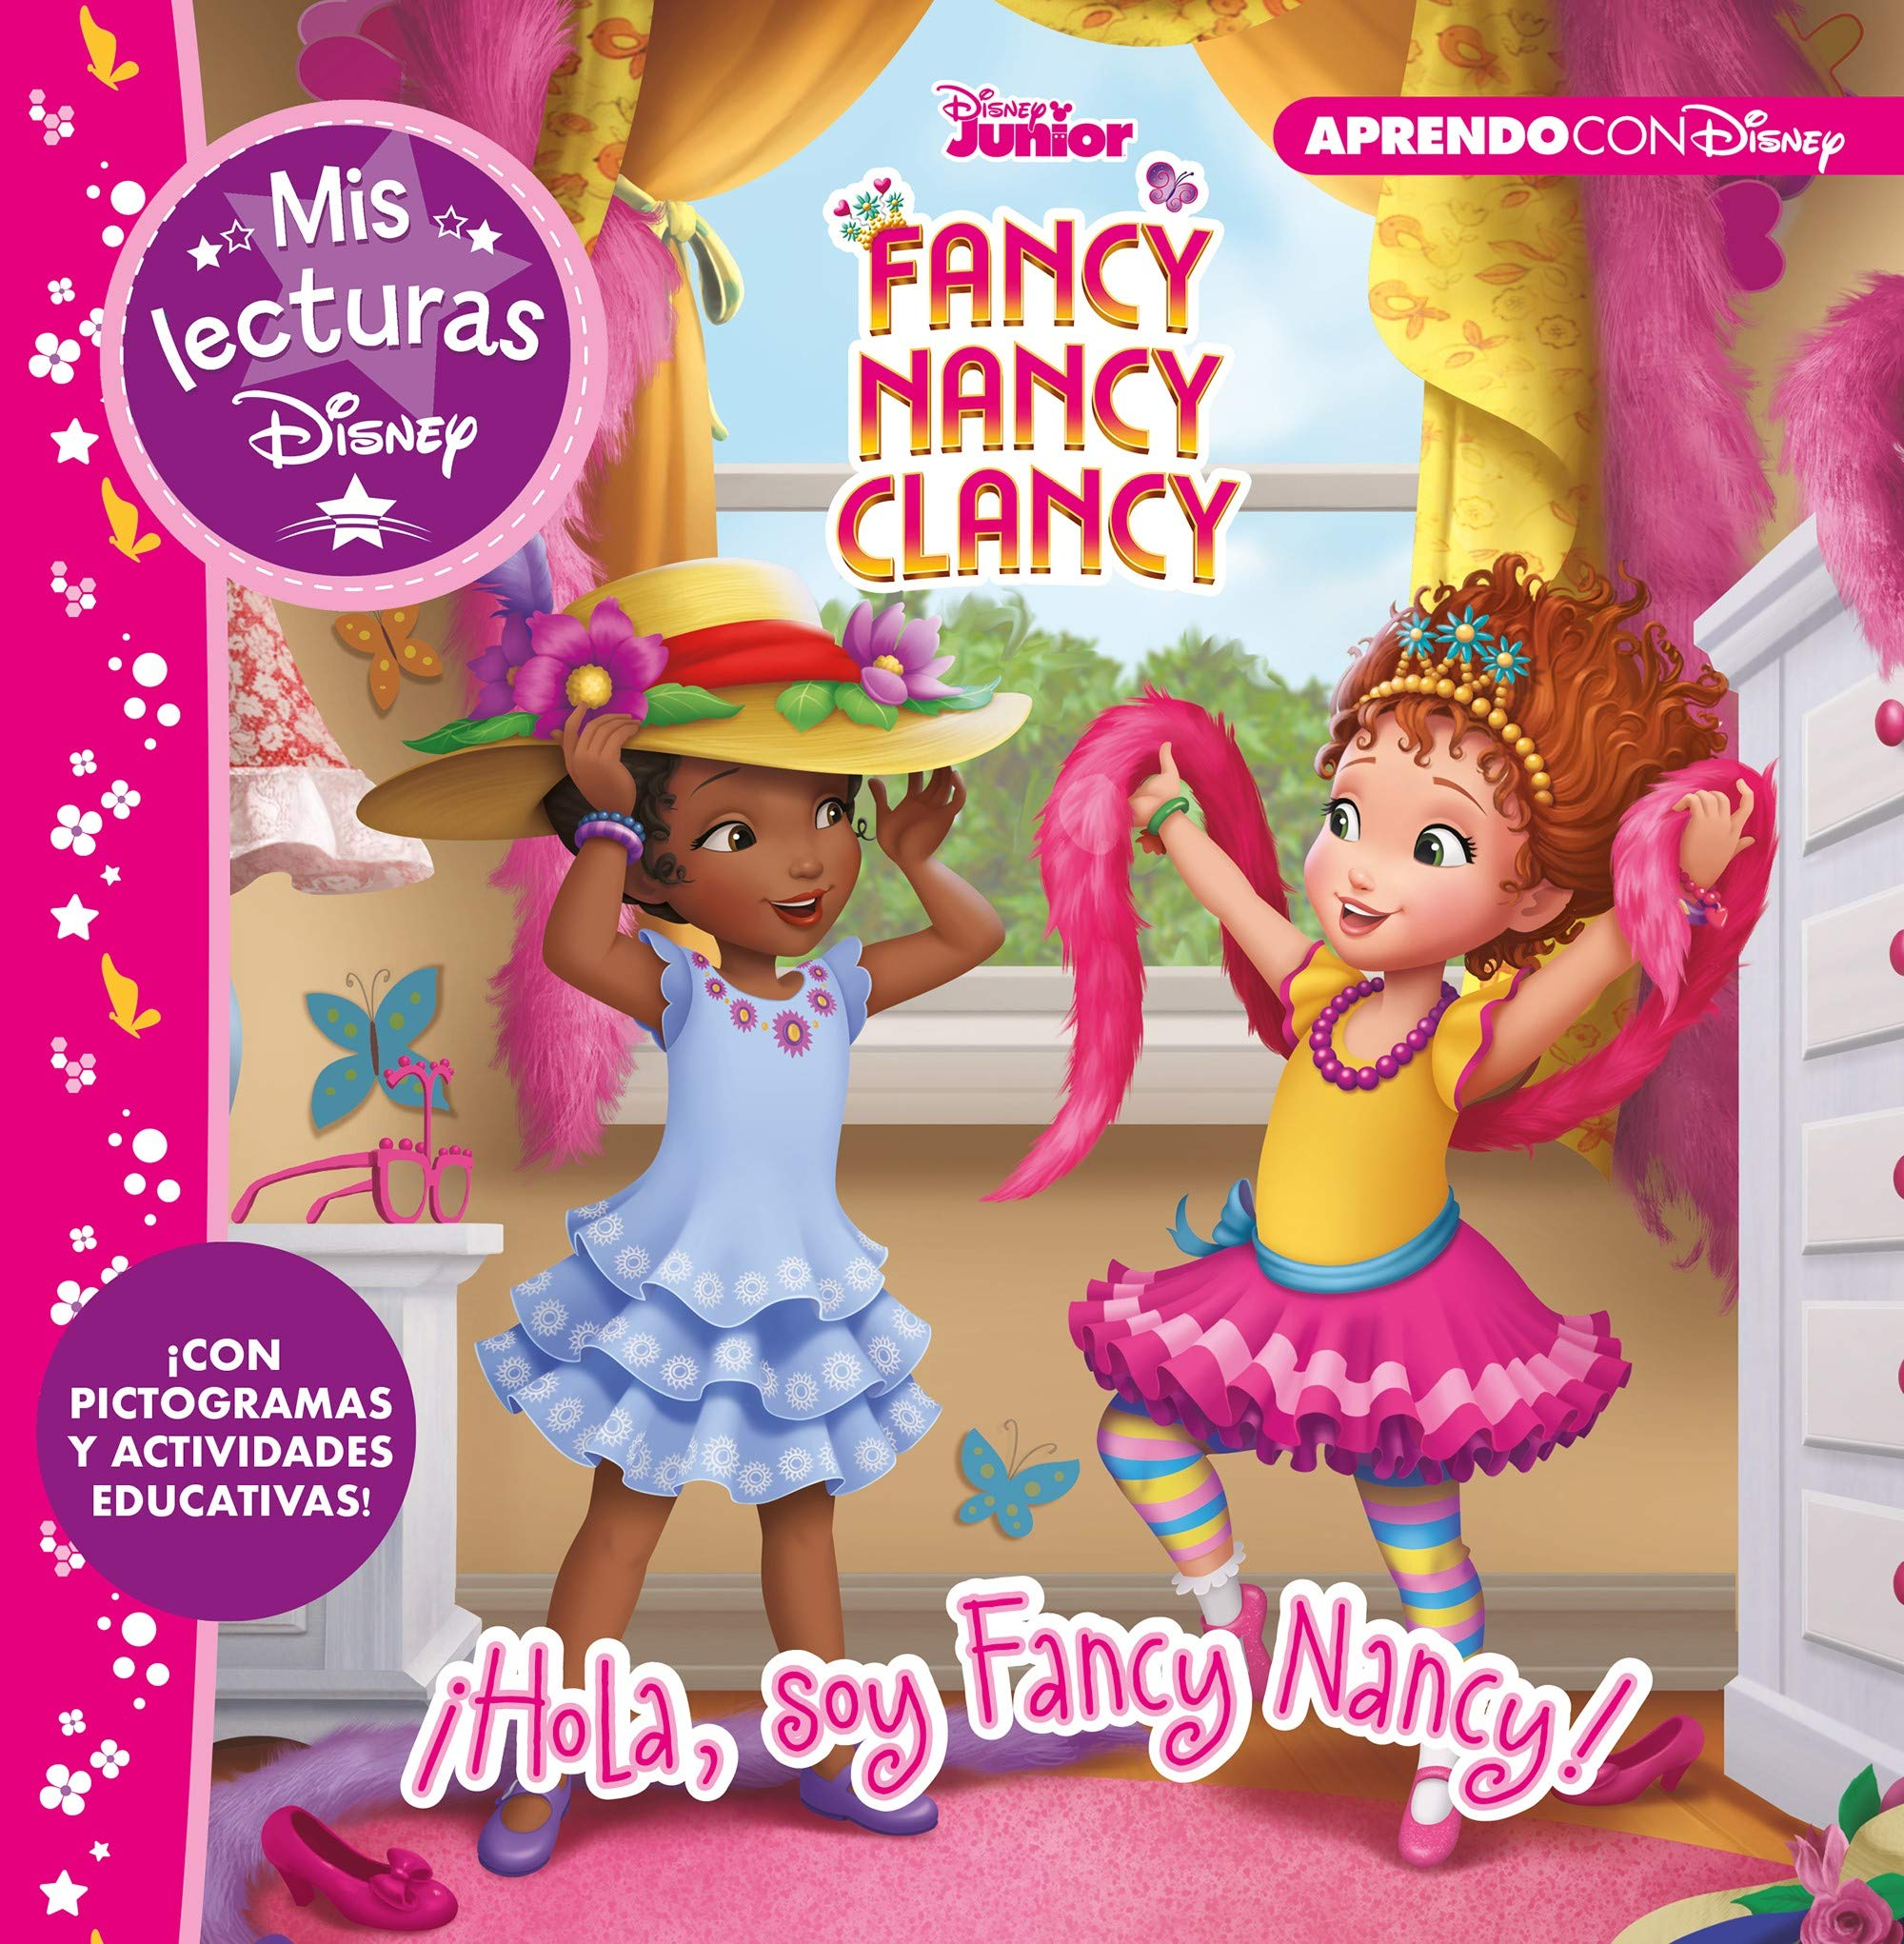 Fancy Nancy Clancy Hola Soy Fancy Nancy Mis Lecturas Disney Con Pictogramas Y Actividades Educativas Spanish Edition Disney 9788417630263 Amazon Com Books